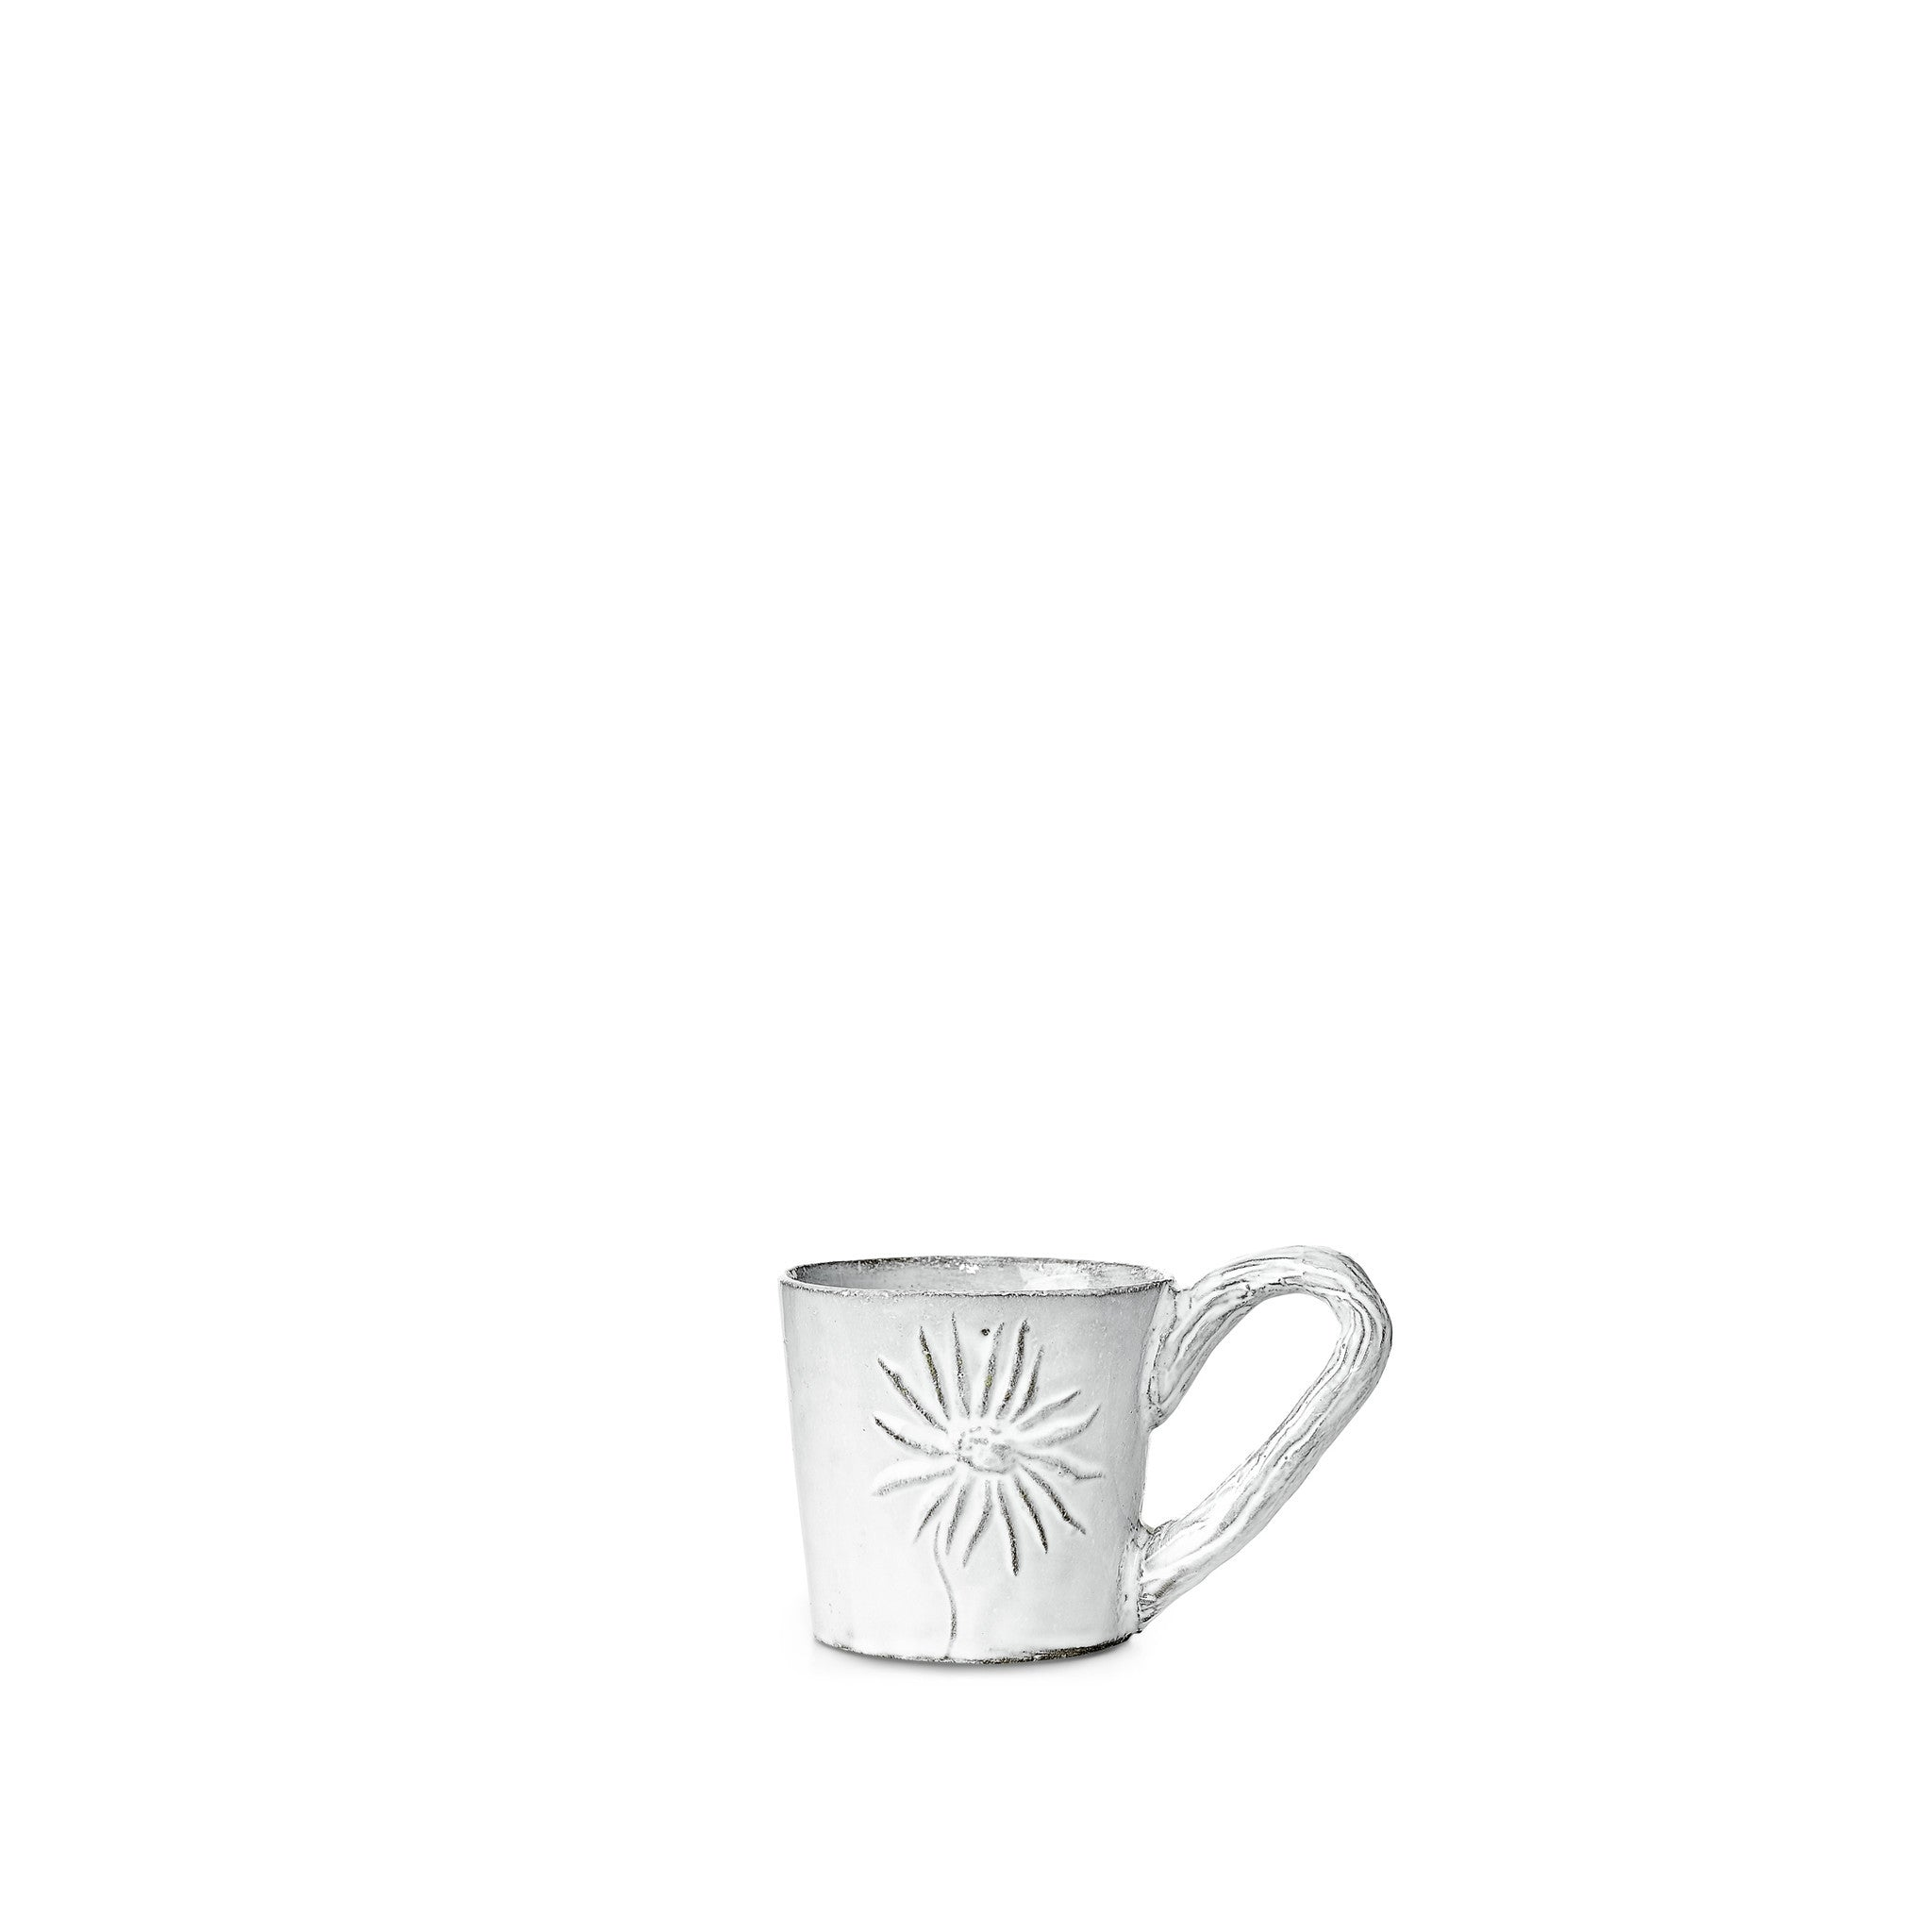 Handle Cup Fleurs By Astier With Small De Villatte Coffee Ow8n0kXP